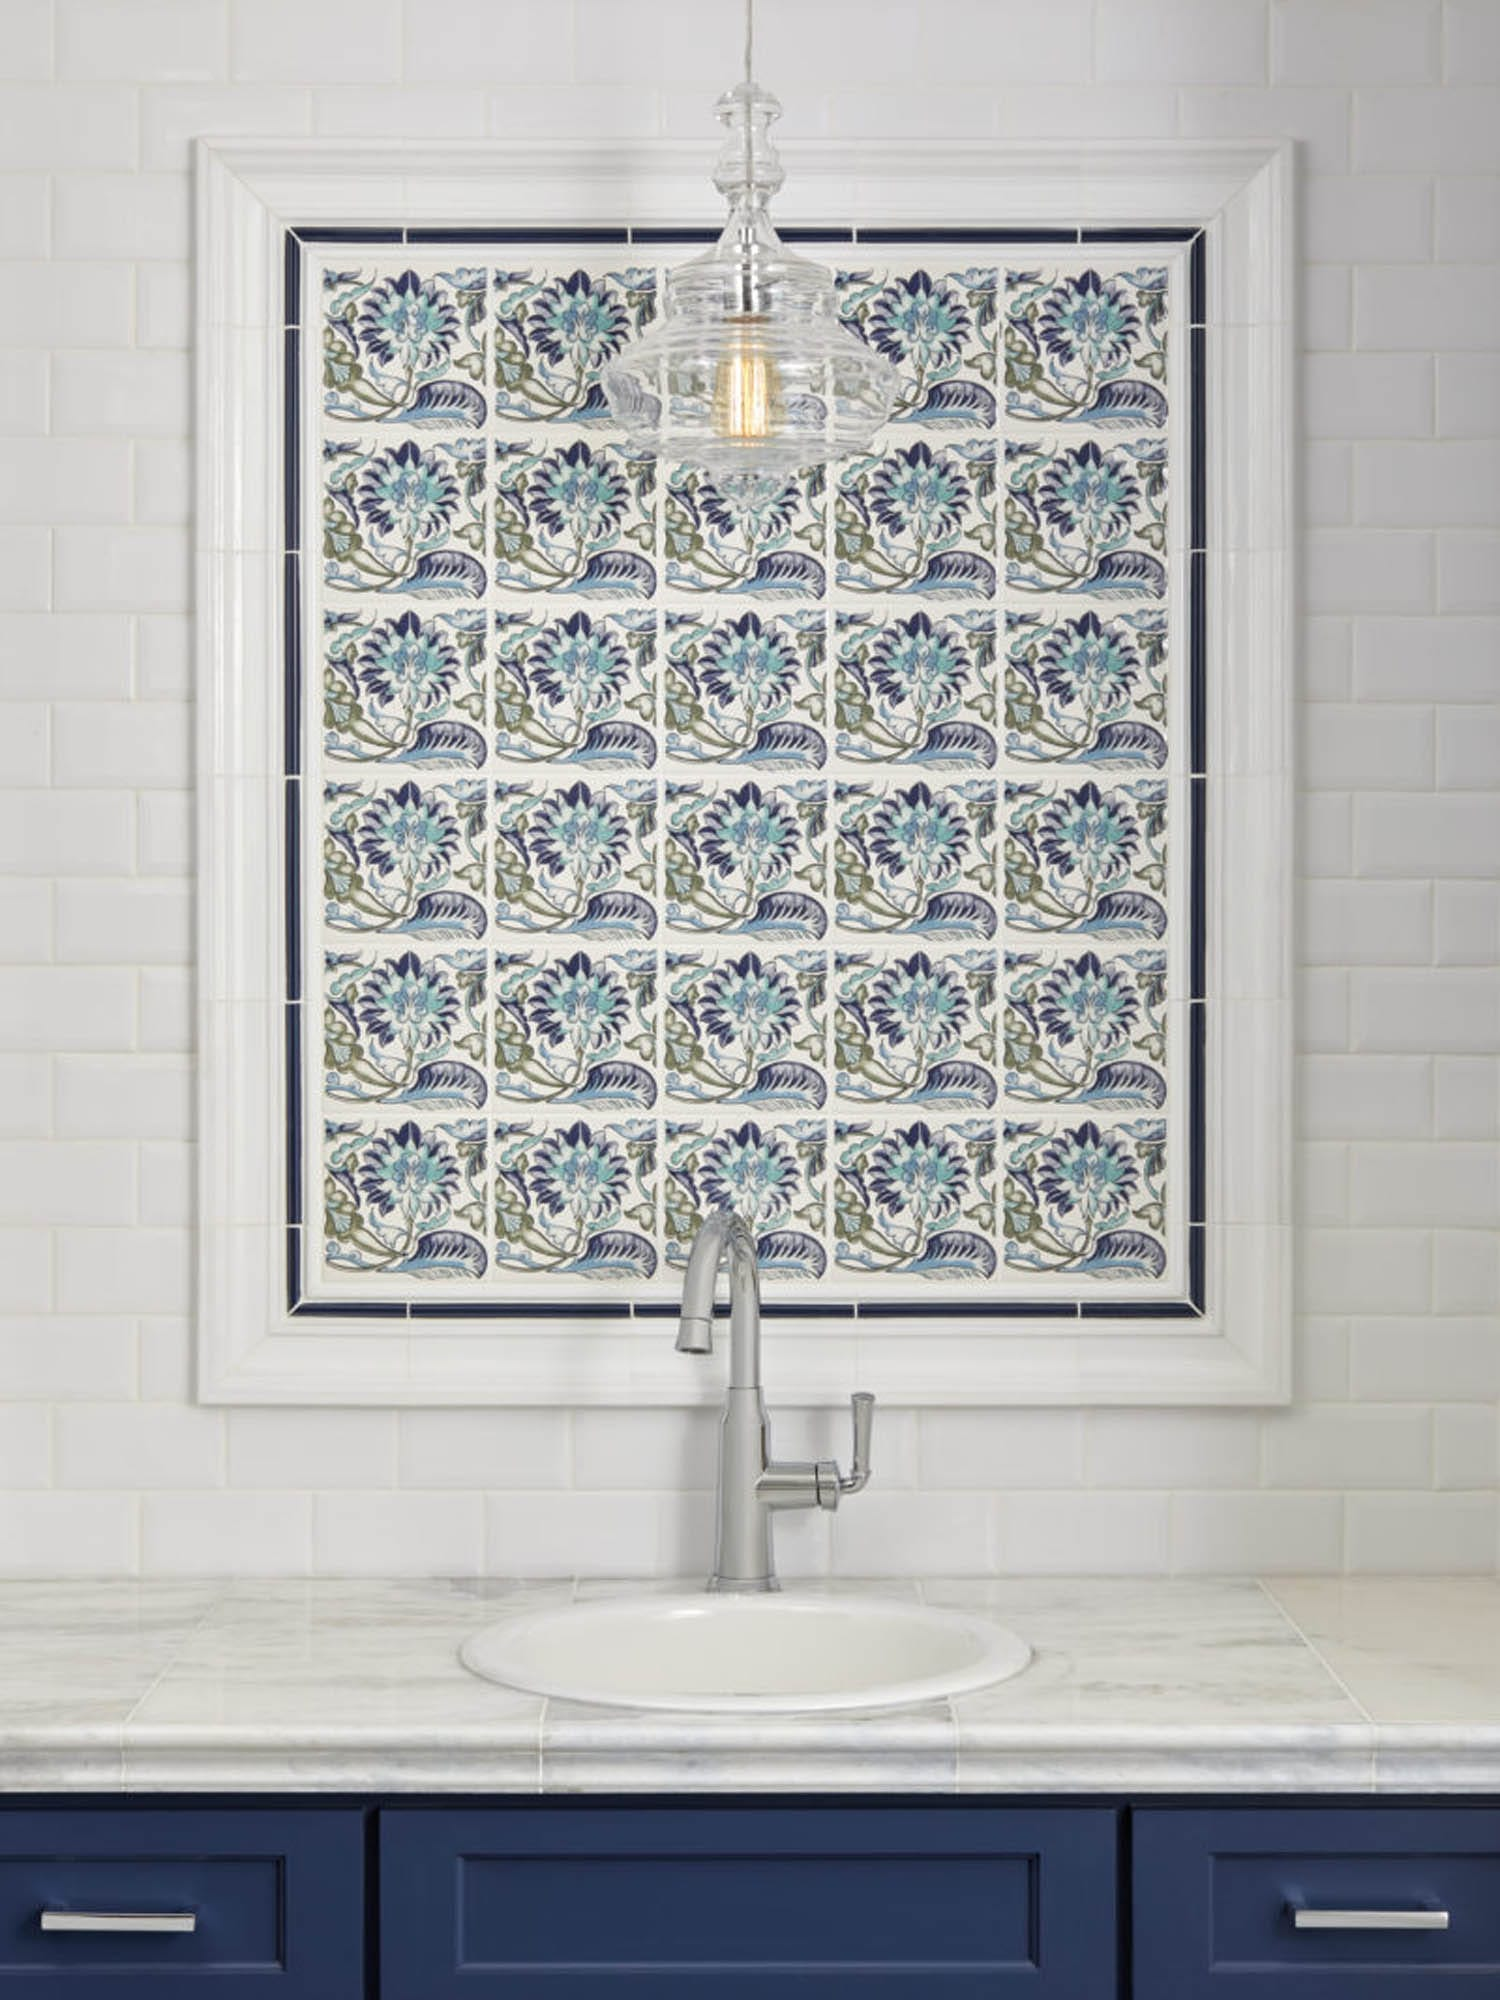 Framed patterned floral tiles